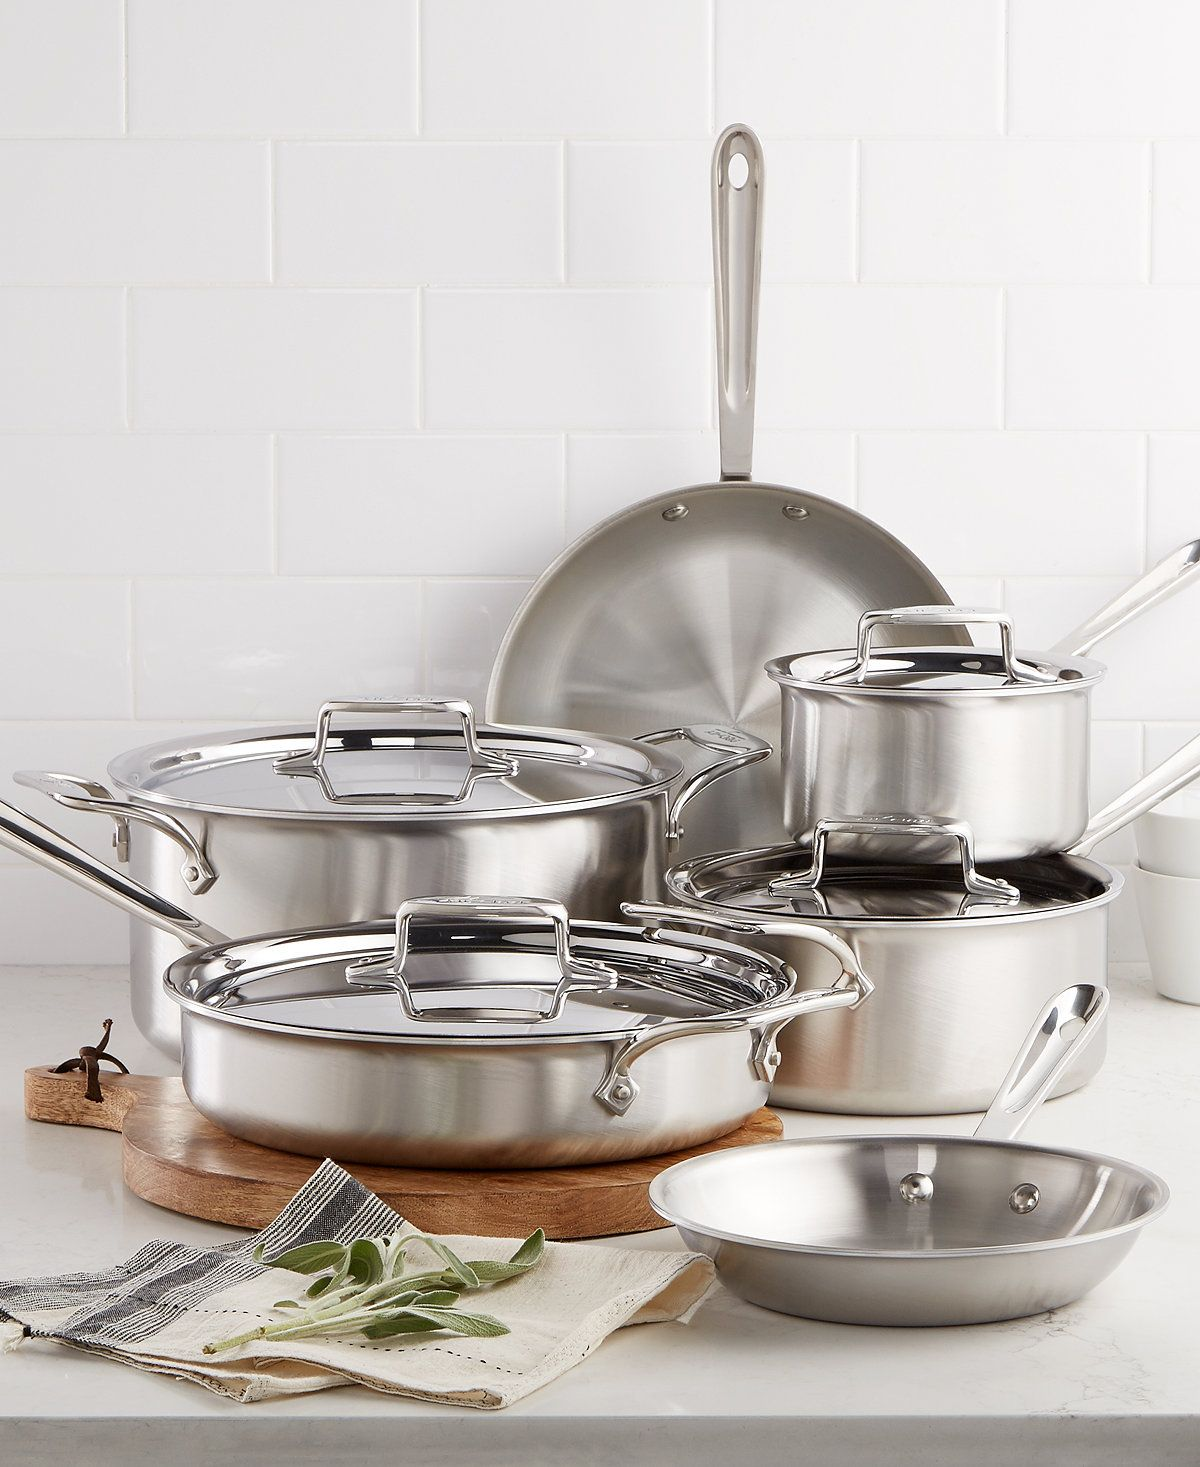 All Clad D5 Brushed Stainless Steel 10 Pc Cookware Set Cookware Cookware Sets Kitchen Cookware Set Brushed Stainless Steel Cookware Set Stainless Steel All clad d5 10 piece set